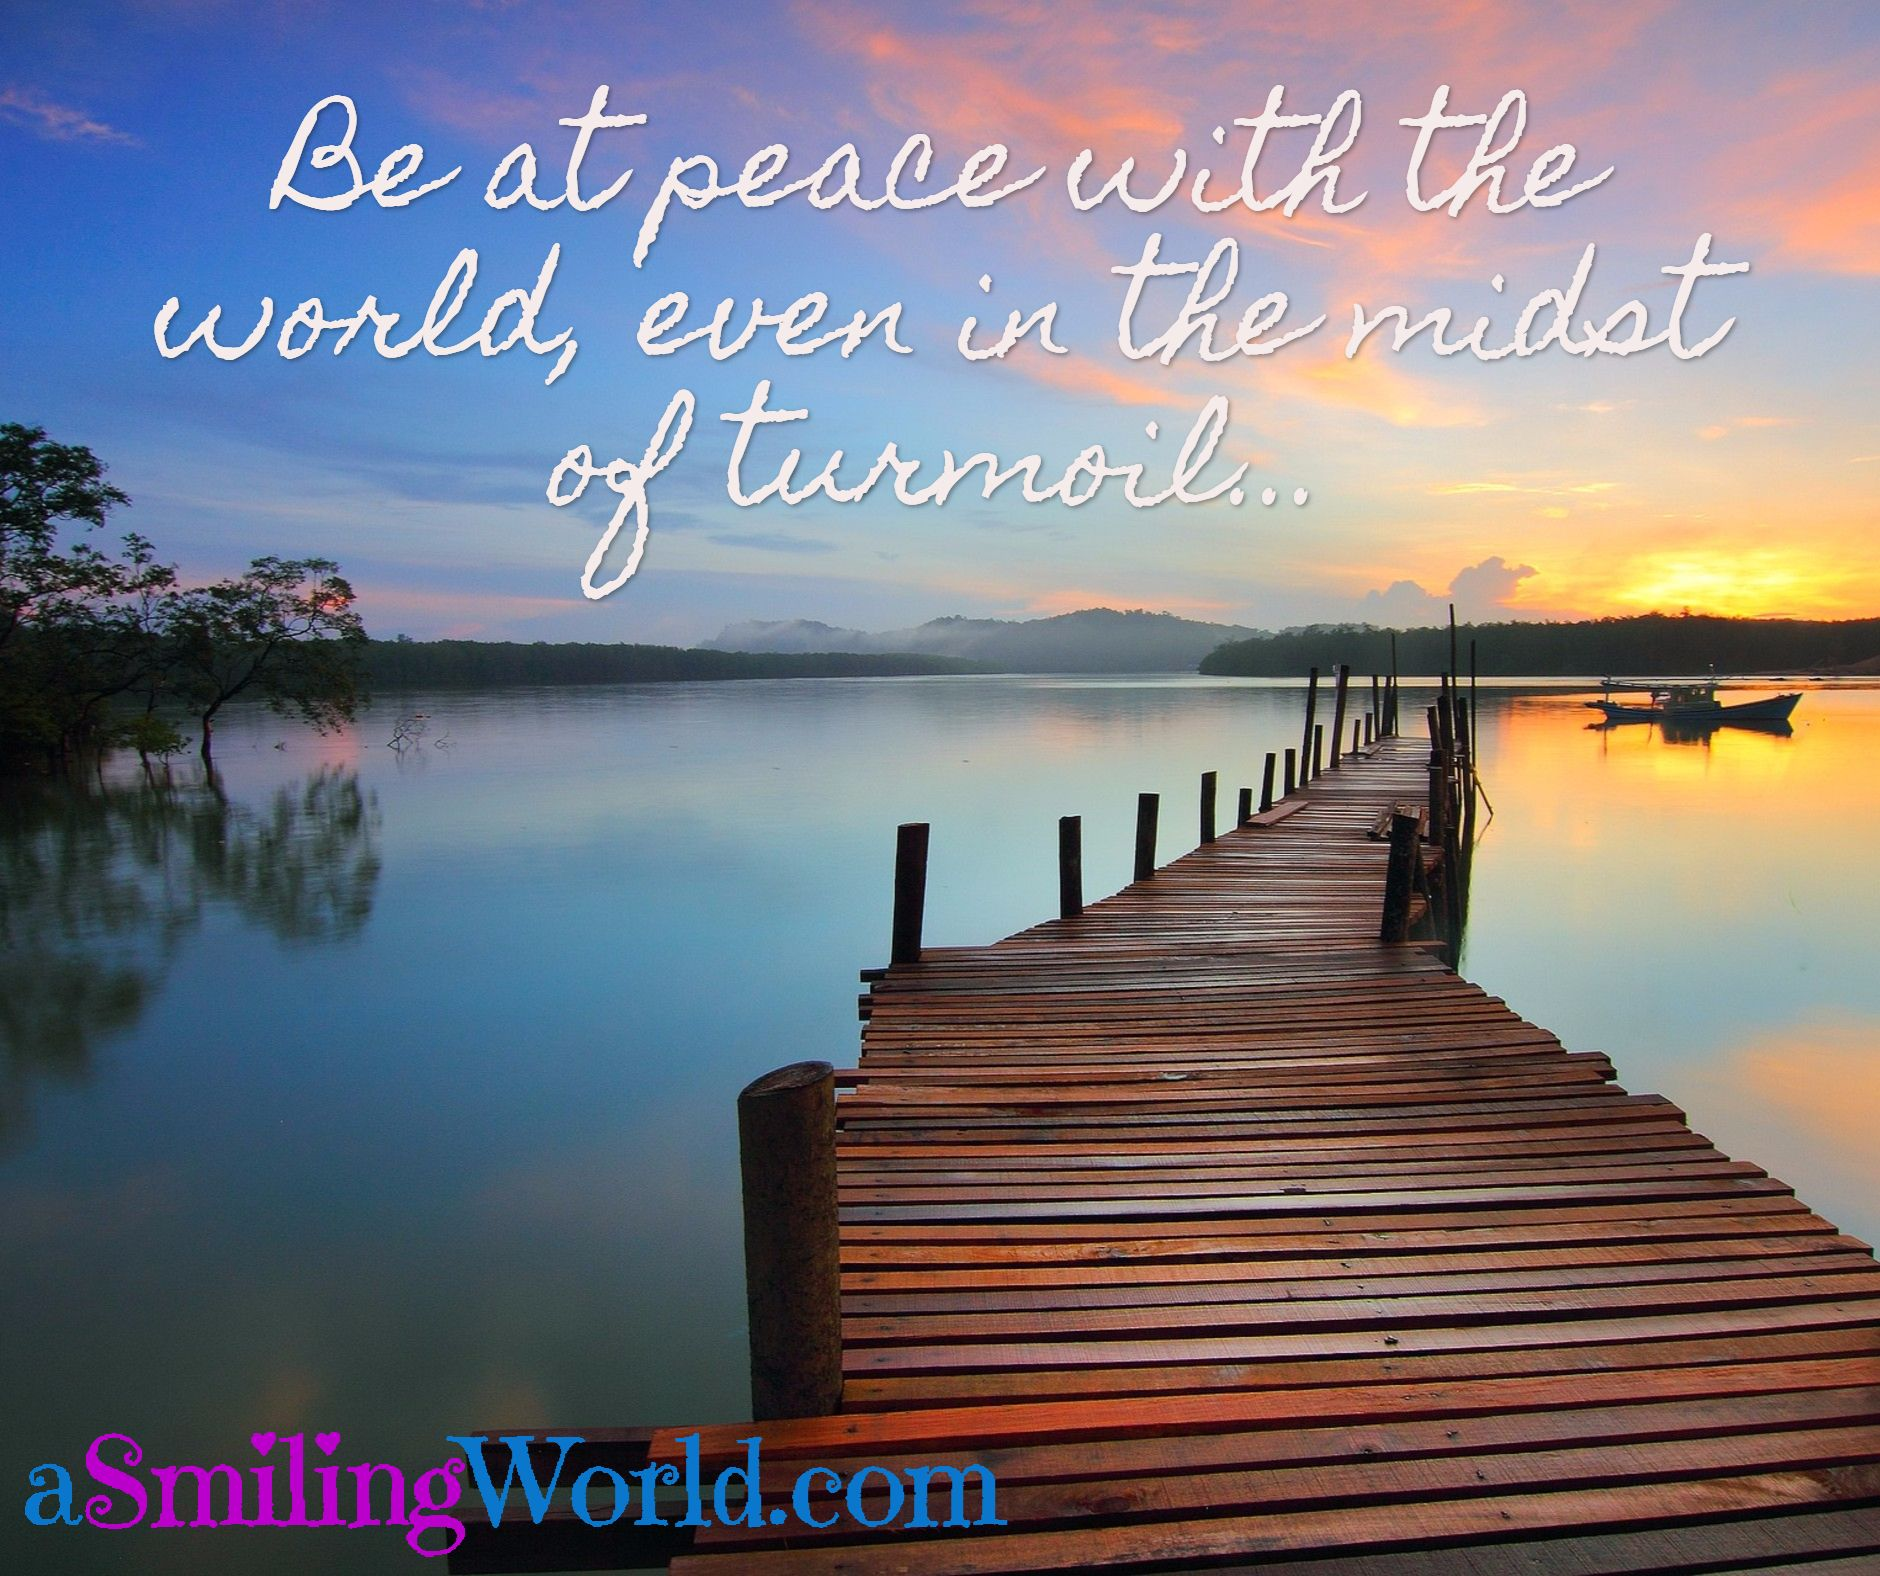 Be at peace with the world, even in the midst of turmoil...